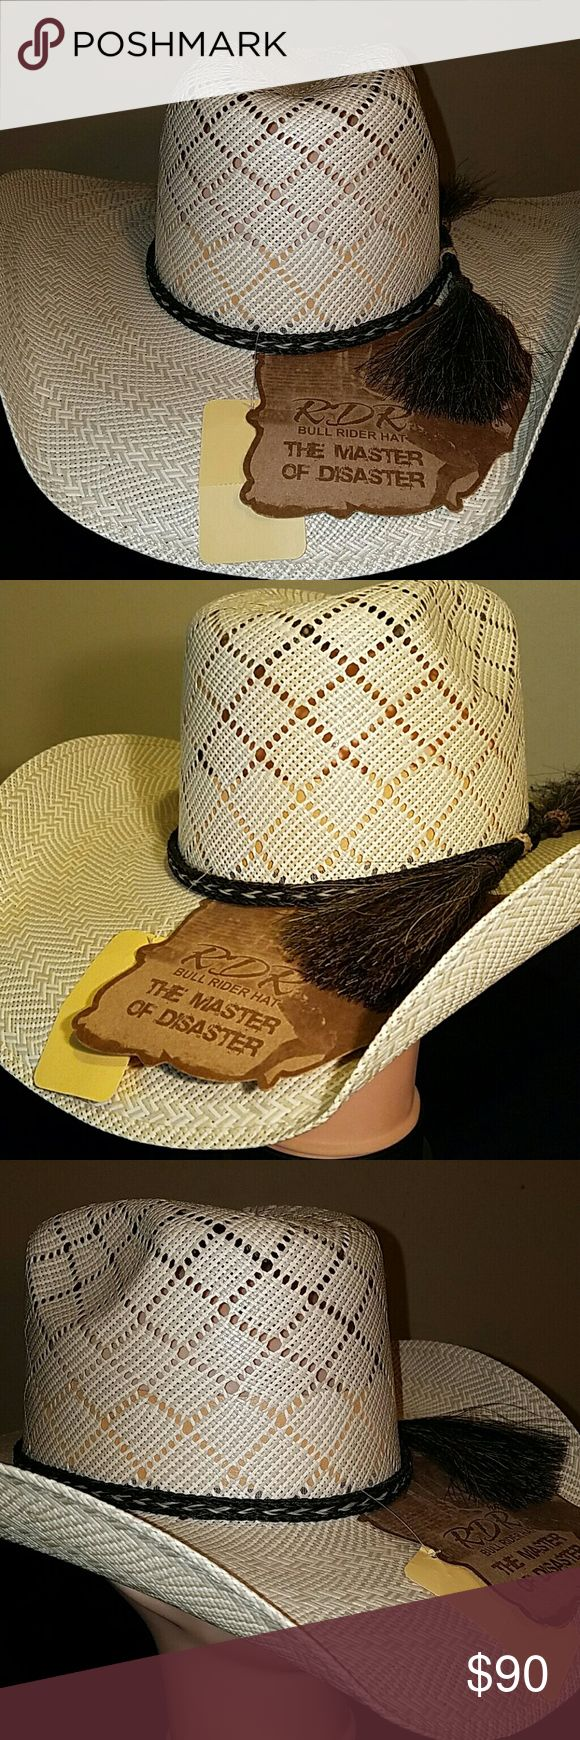 """Cowboy hat """"Master of Diaster"""" Beautifully crafted two tone Cowboy hat with horse hair hat band and leather head band.   Diagonal light weight weave, 5"""" vented crown, 4 1/4 in brim. RDR Accessories Hats"""